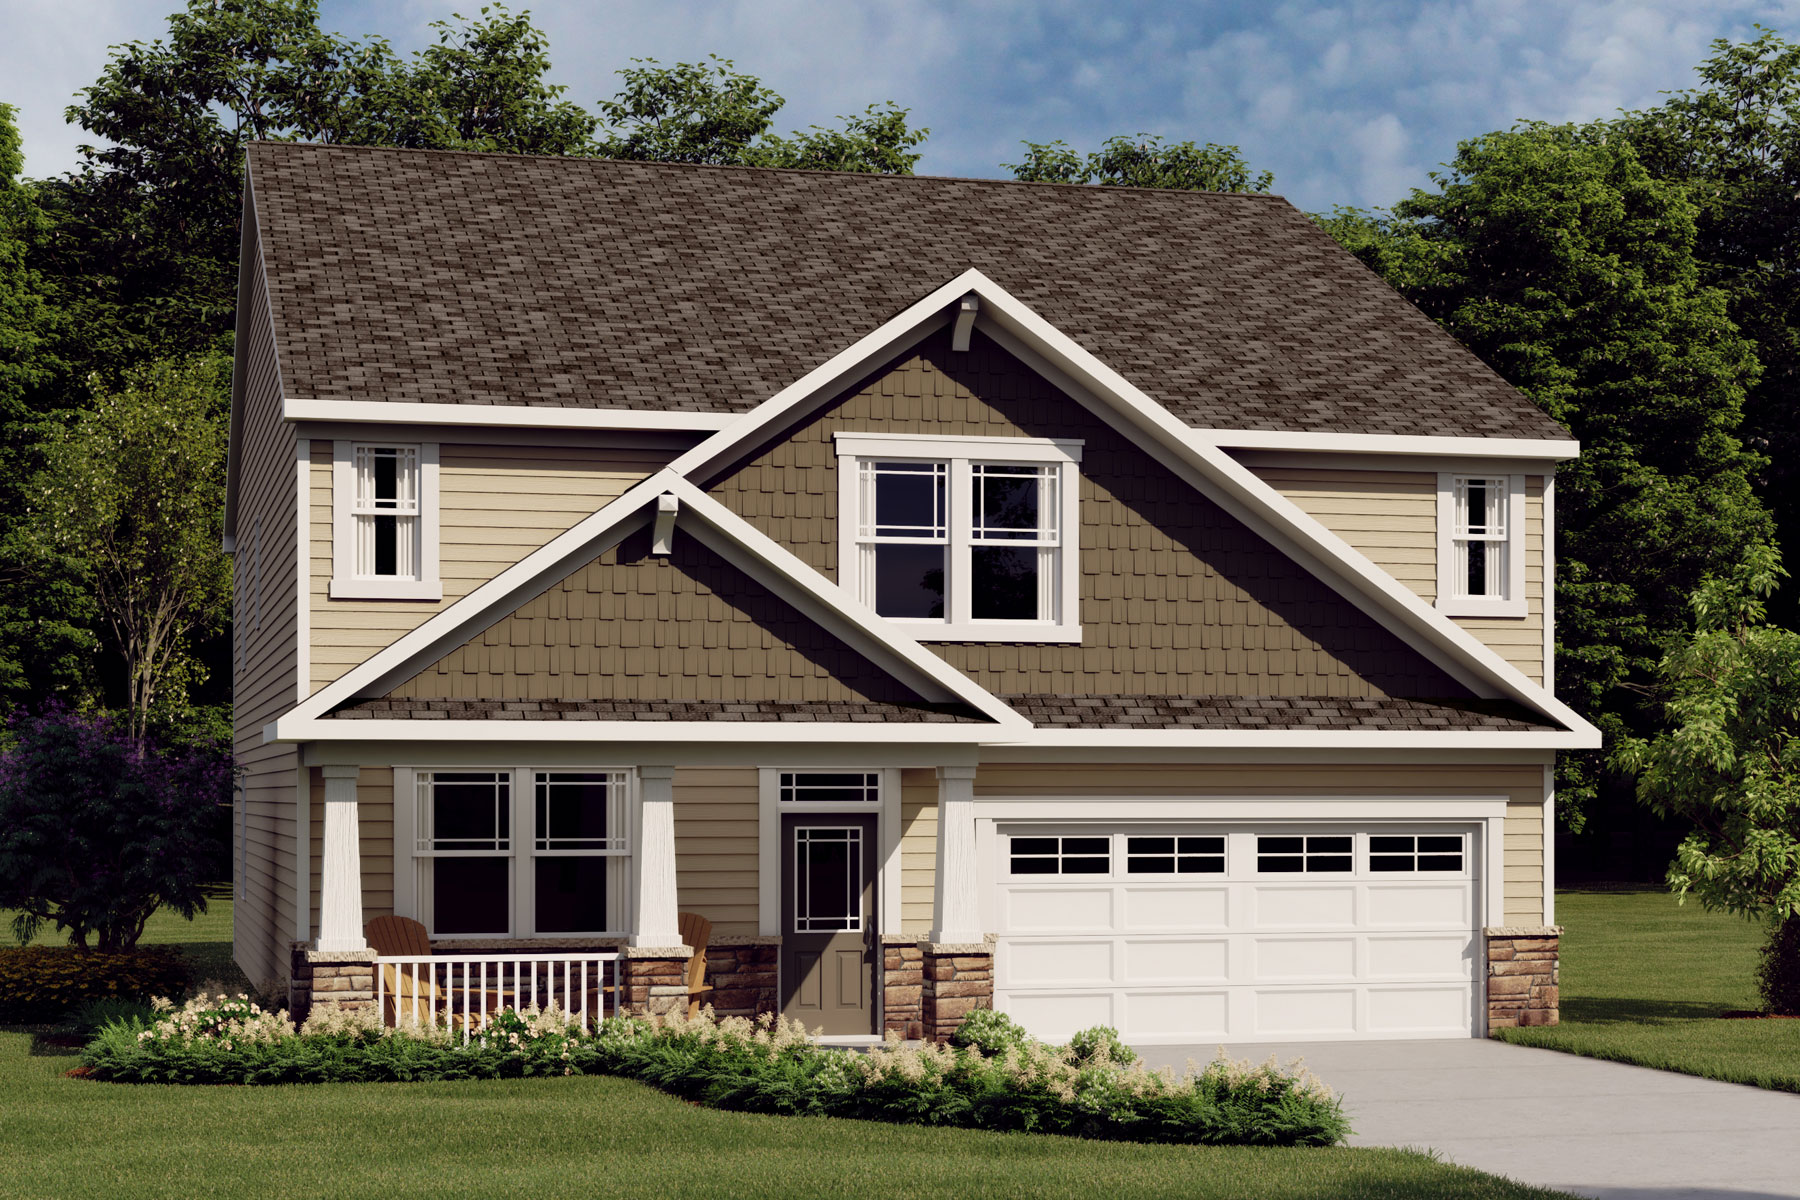 Decker Plan Elevation Front at Bent Tree in Fuquay-Varina North Carolina by Mattamy Homes